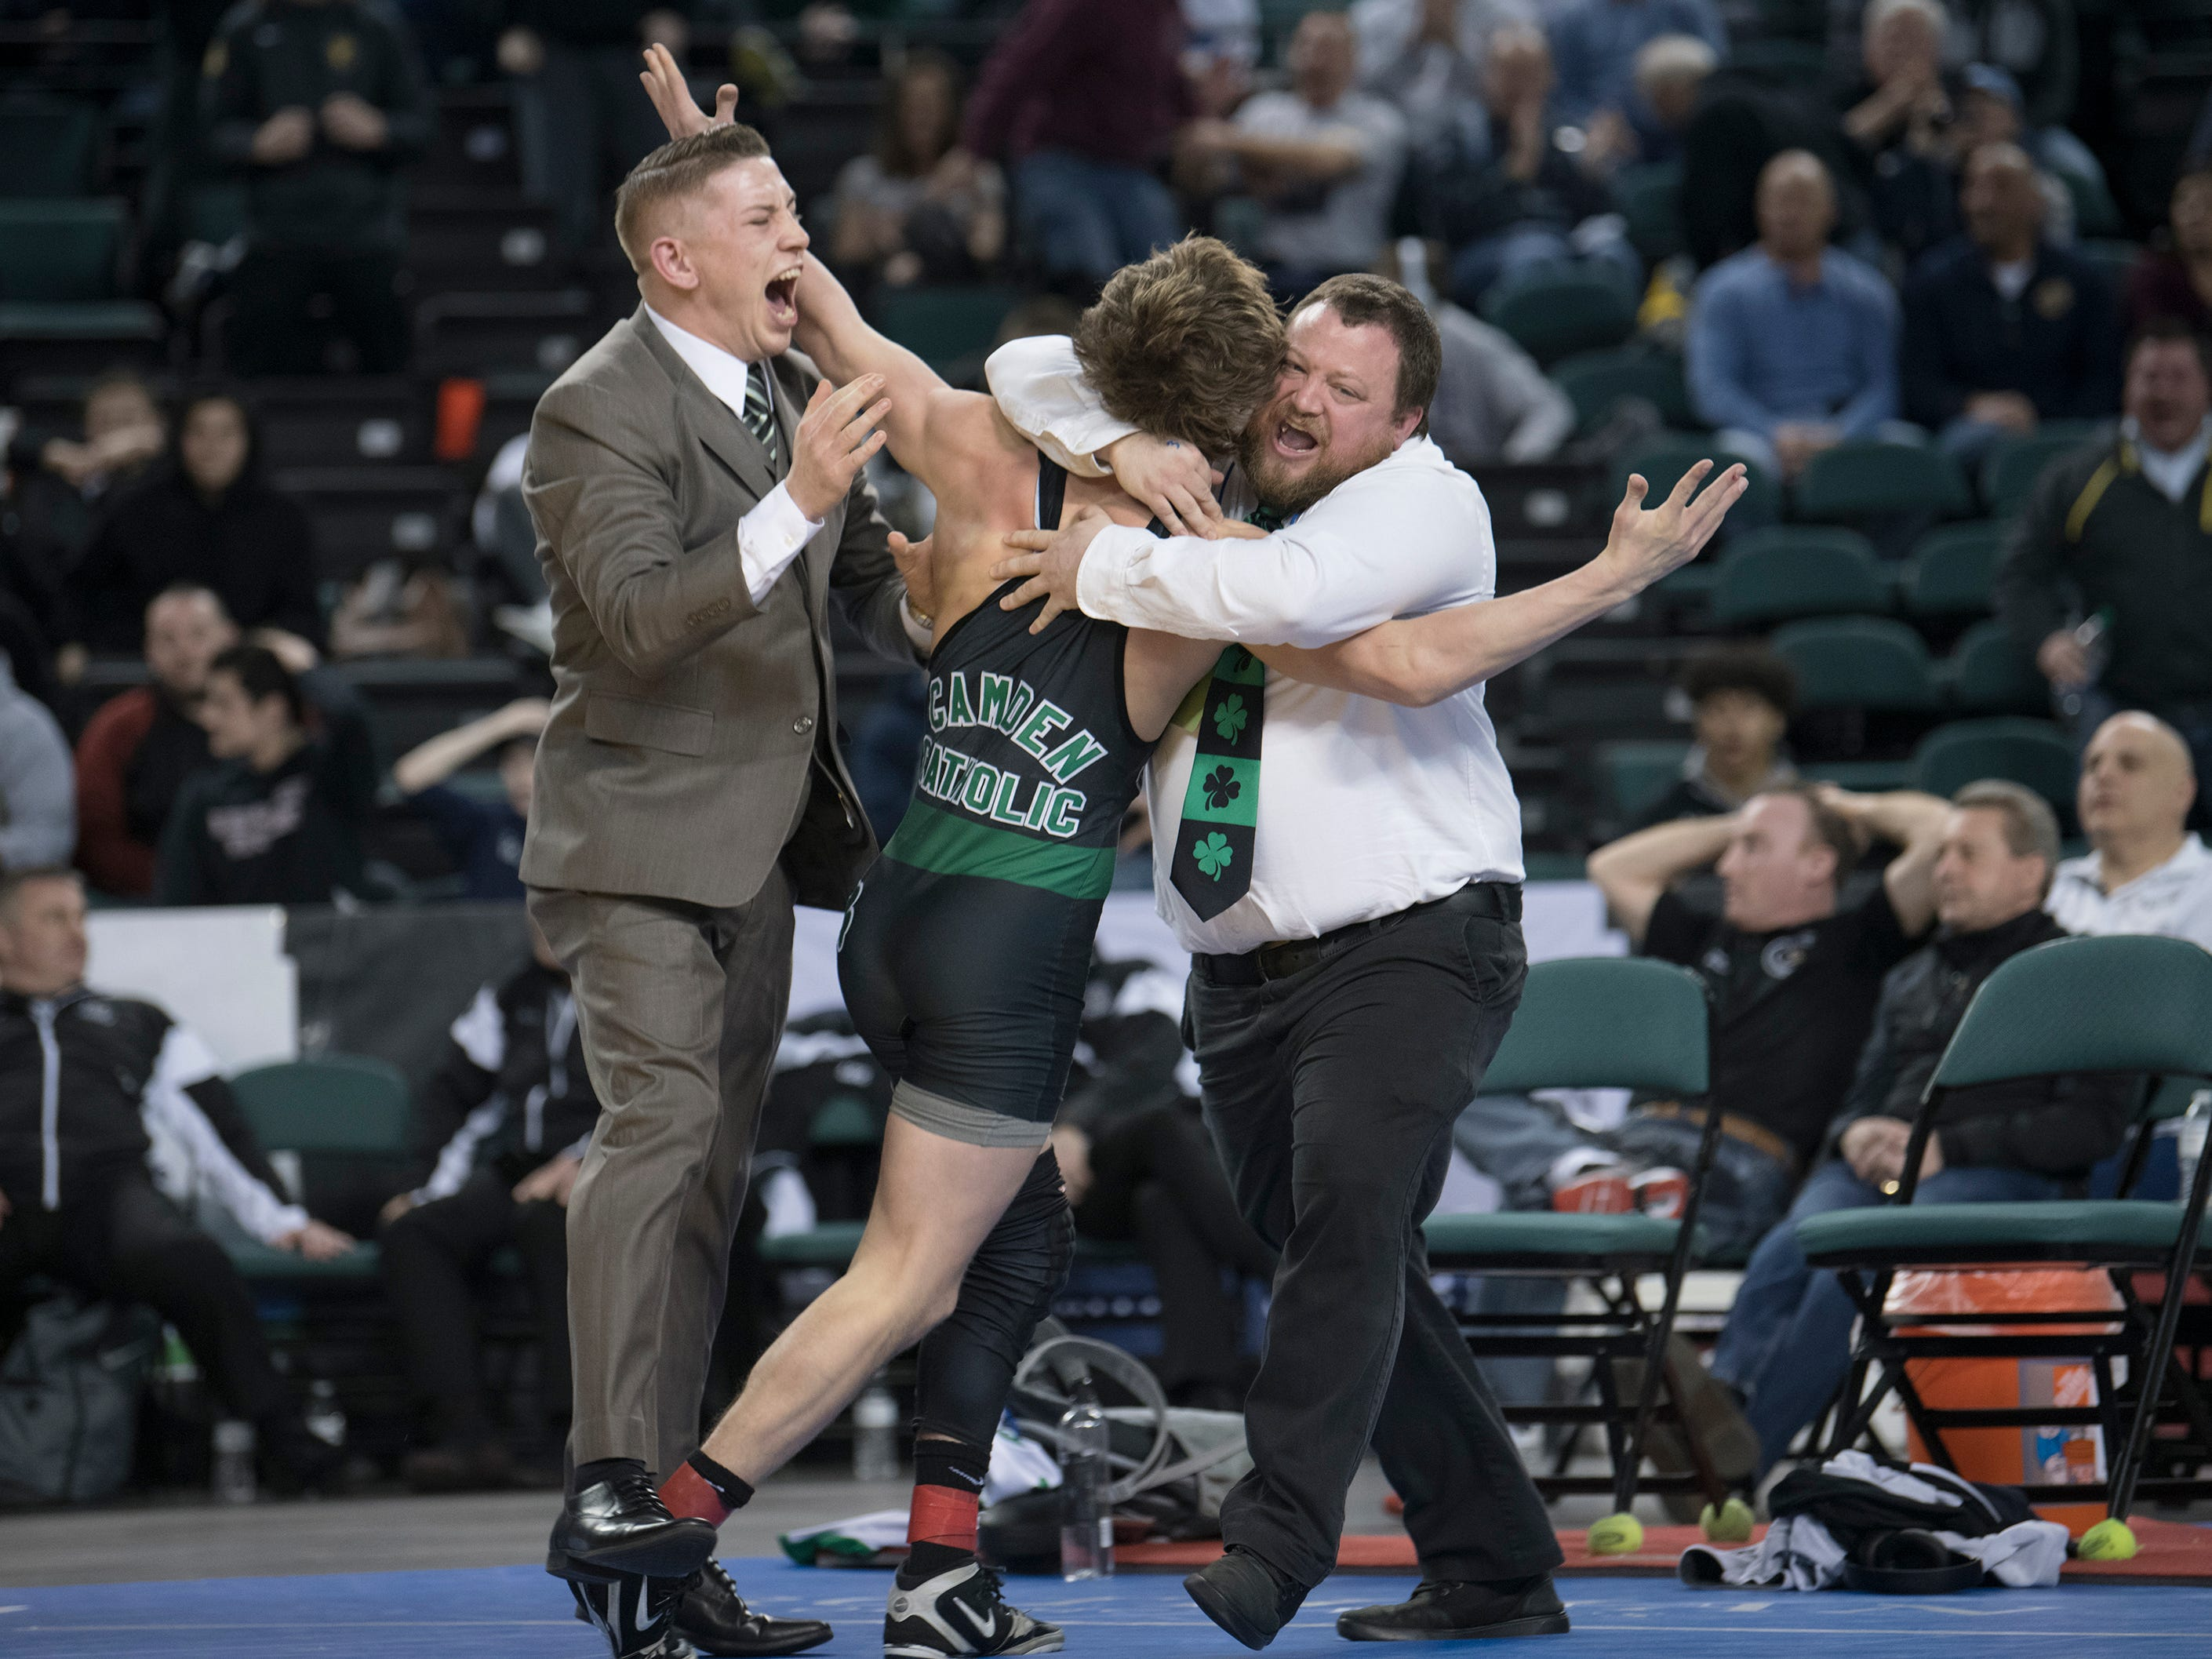 Camden Catholic's Lucas Revano celebrates his second state title with his coaches after he pinned DePaul's Ricky Cabanillas in overtime of the 145 lb. championship bout of the 2019 NJSIAA State Wrestling Championships tournament held at Boardwalk Hall in Atlantic City on Saturday, March 2, 2019.